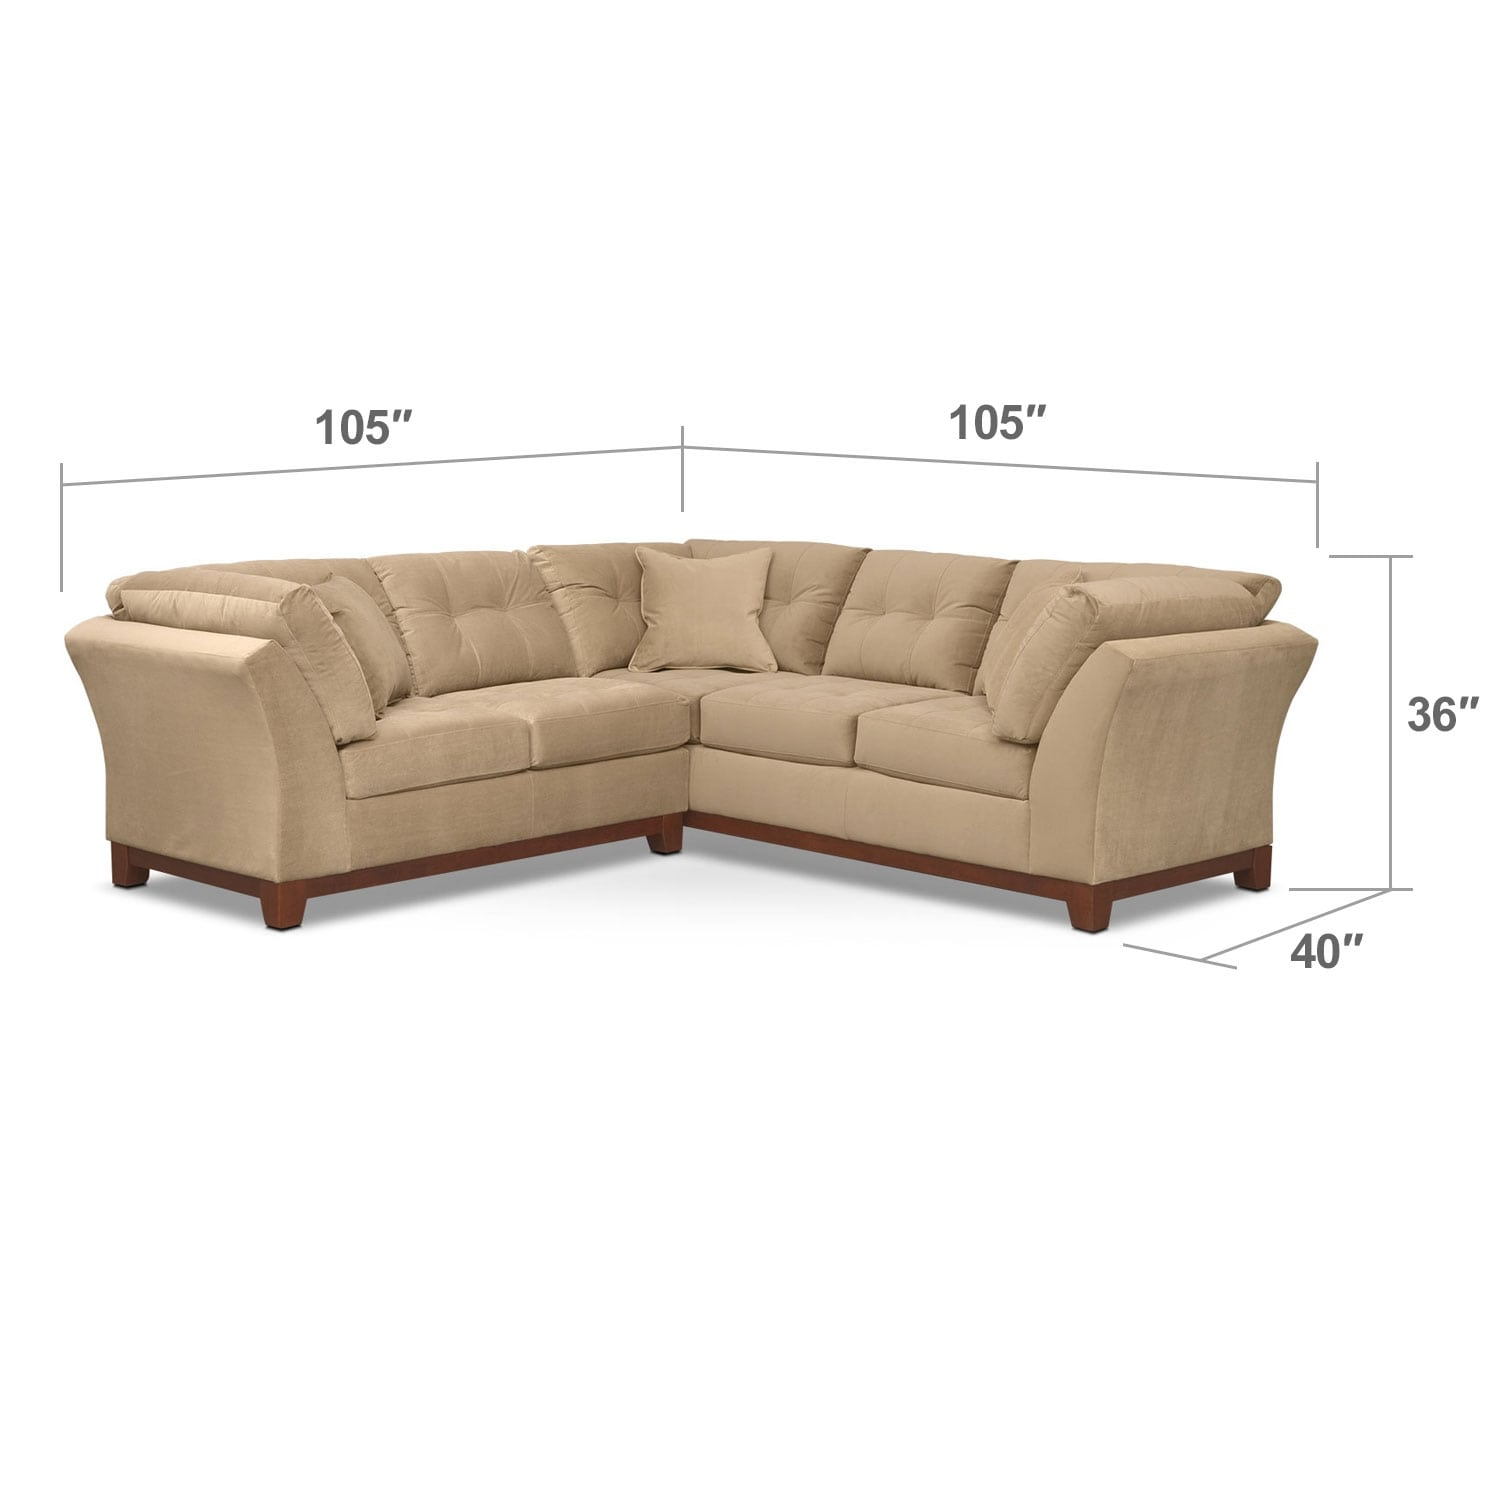 Living Room Furniture - Sebring 2-Piece Sectional with Left-Facing Loveseat - Cocoa